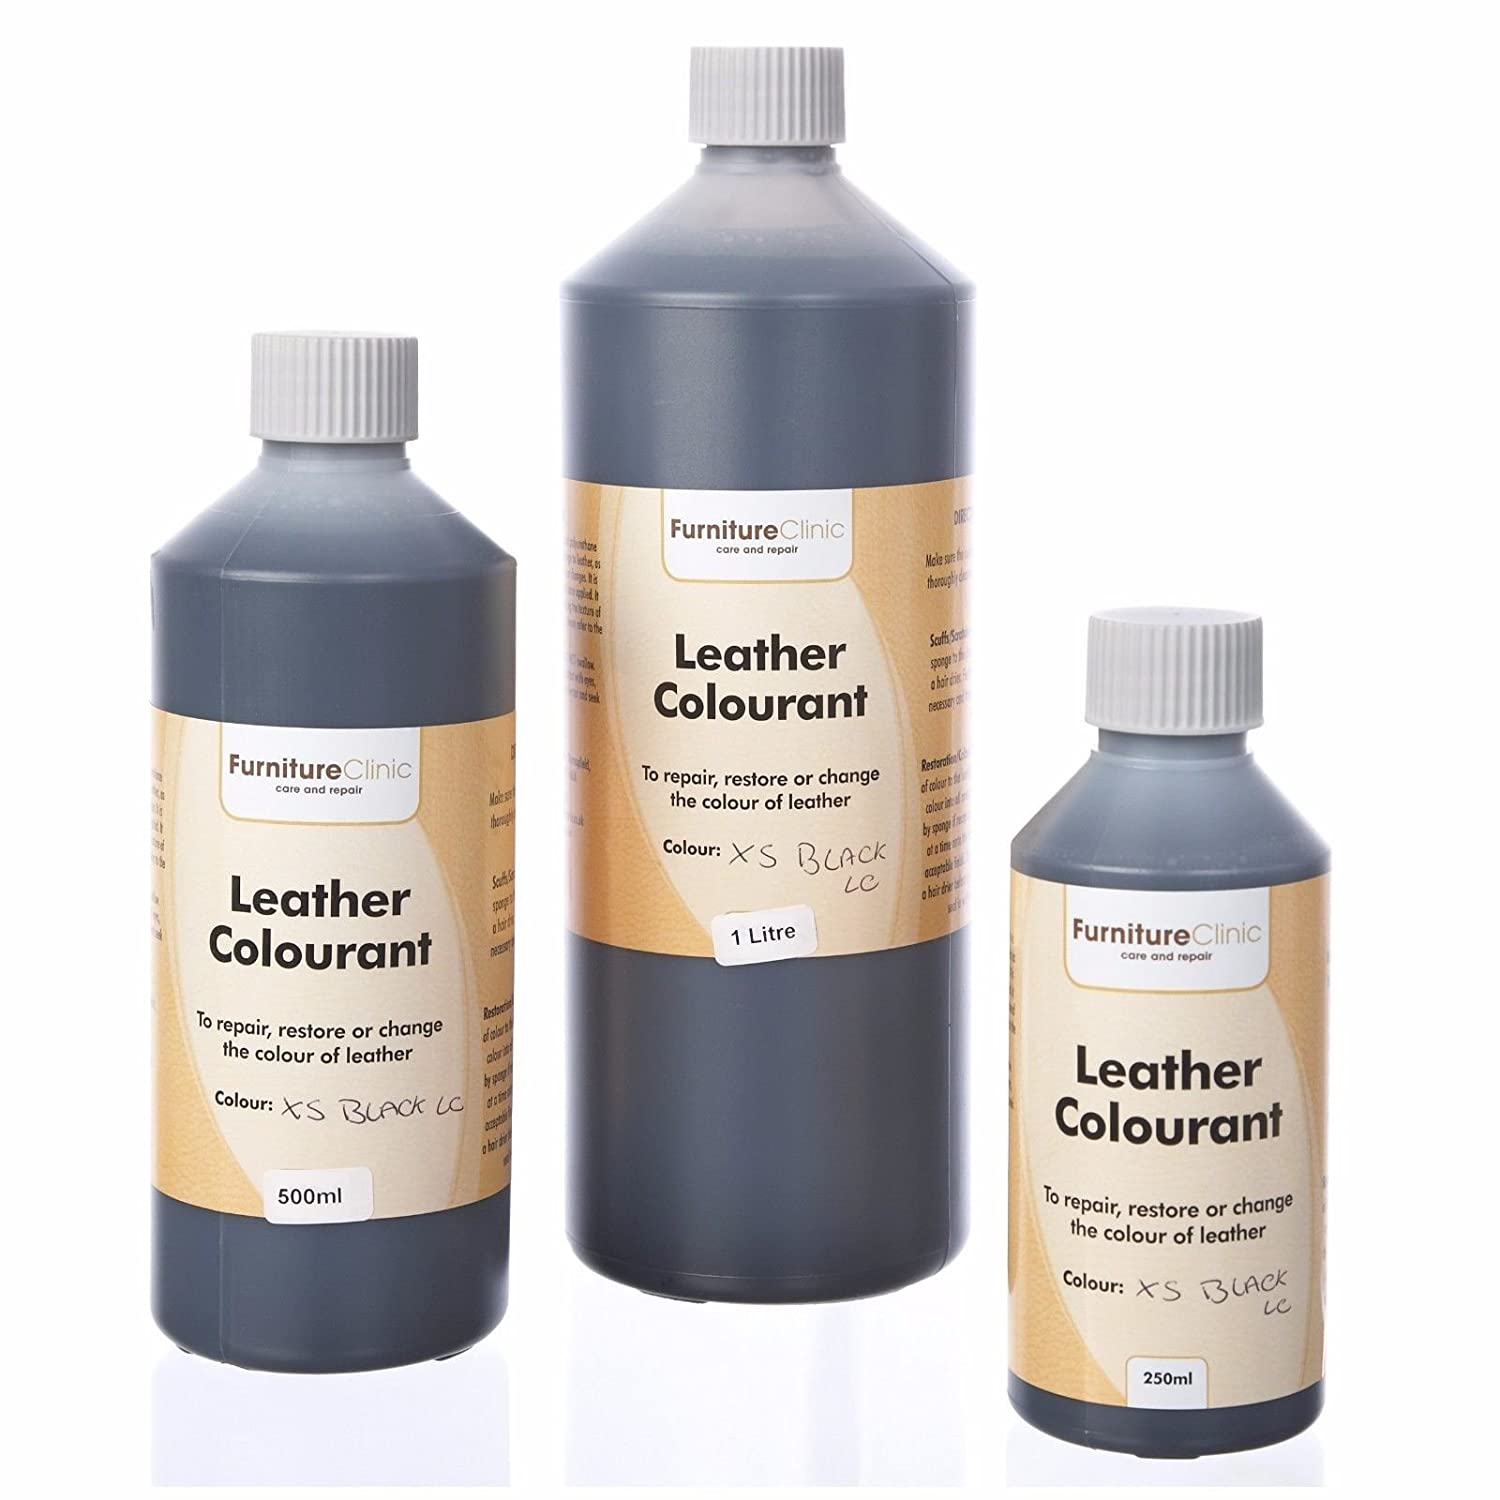 Furniture Clinic Black Leather Repair Paint, Dye, and Leather Colourant | Multiple Sizes | A Self Seal Colourant for Leather Sofas, Leather Suites, Jackets, Chairs, Shoes, Bags and More (50ml)